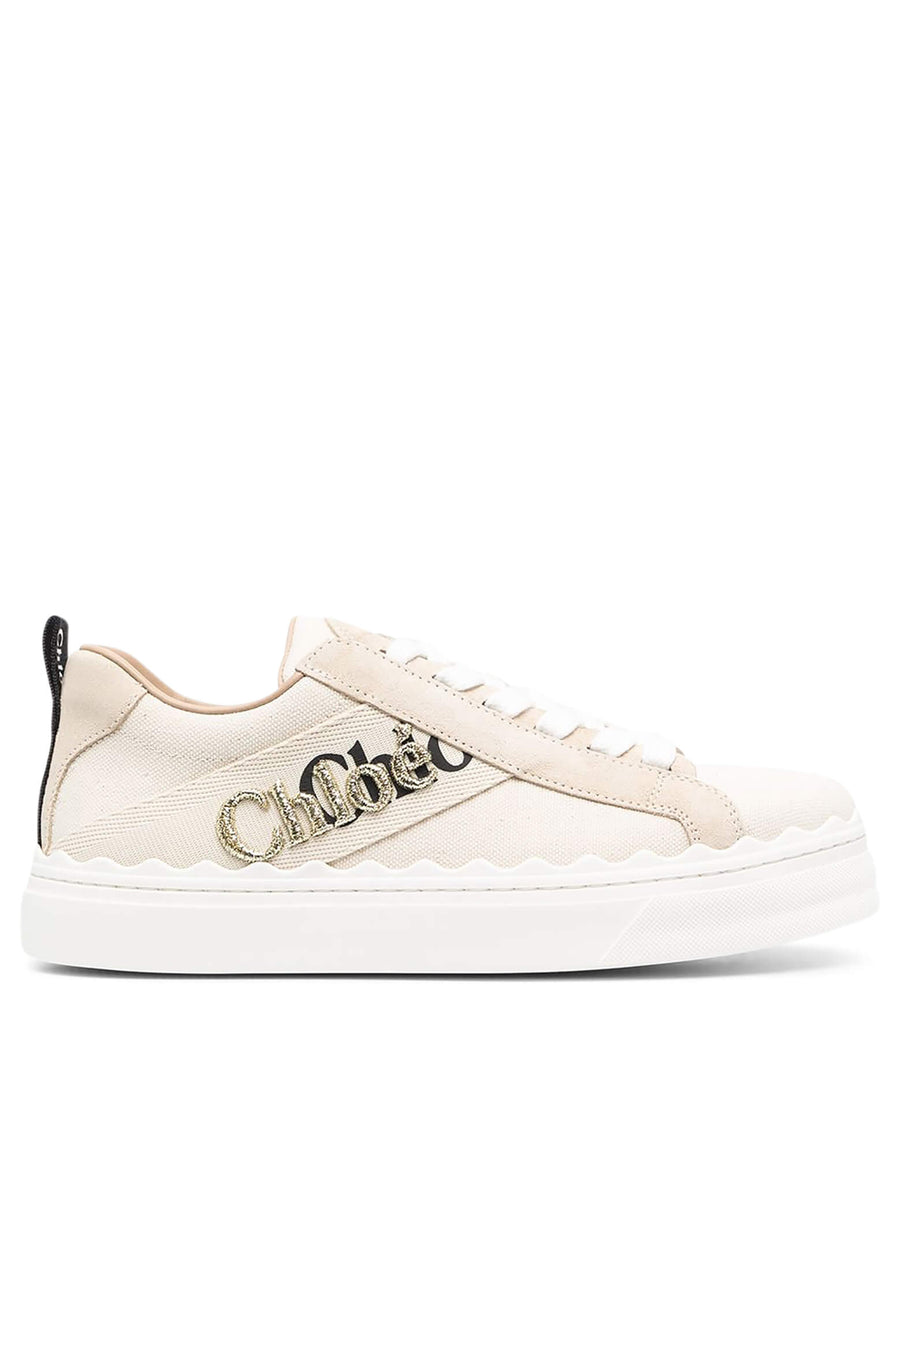 Chloe Lauren Sneaker with Embroidery in White from The New Trend